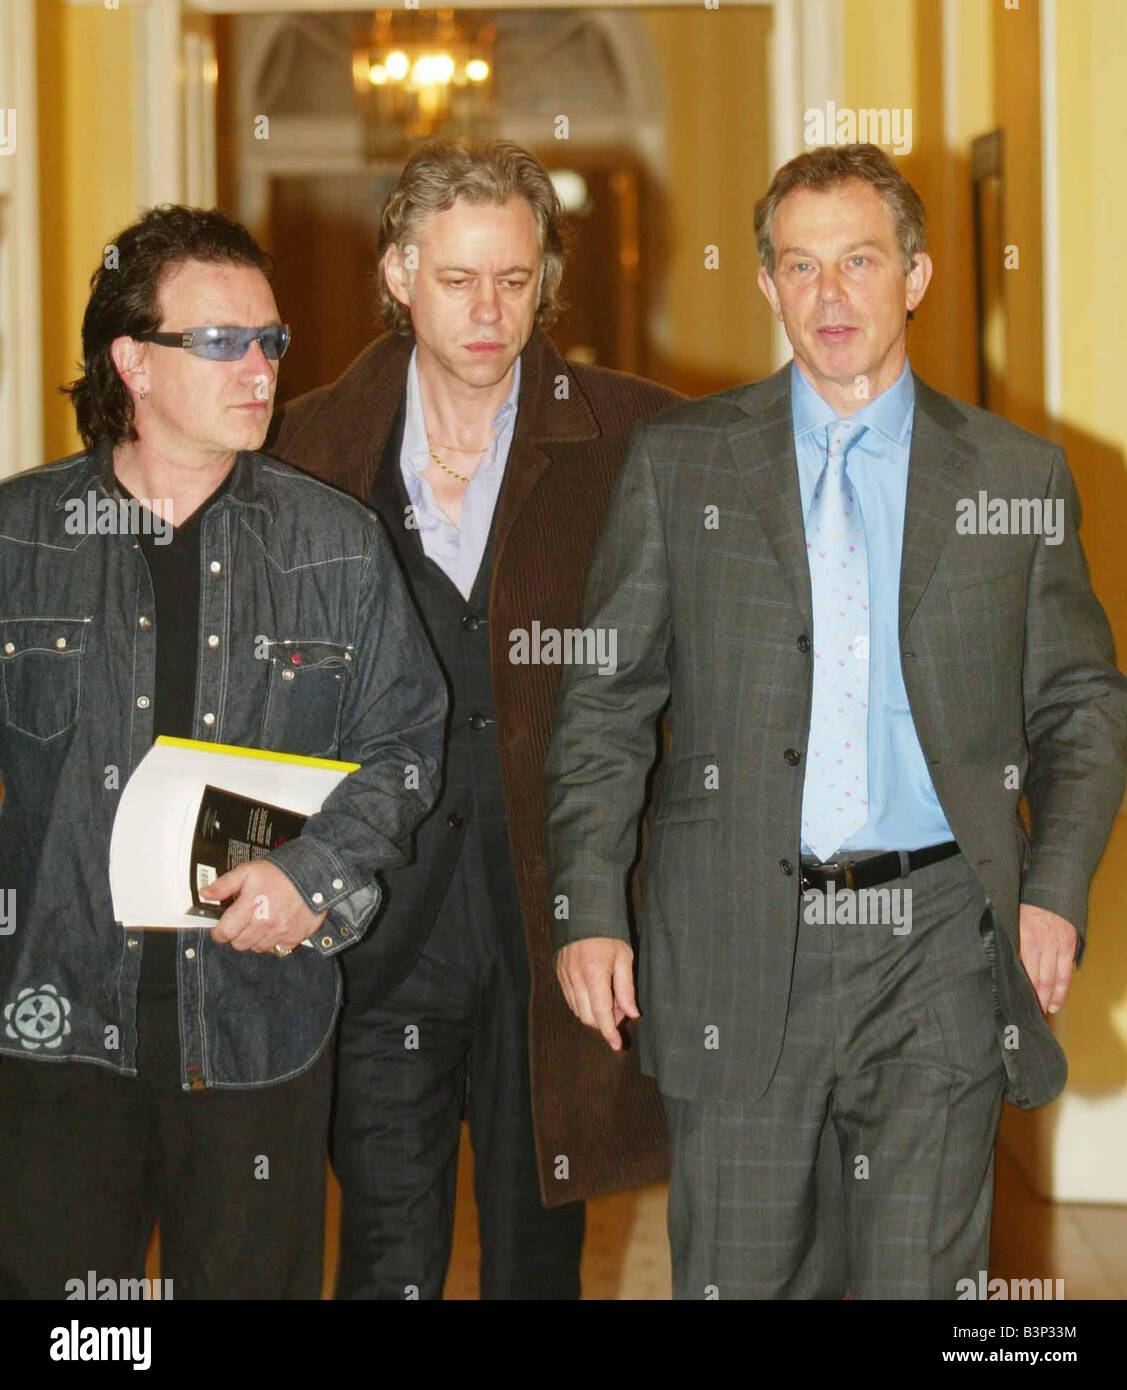 Britain s Prime Minister Tony Blair May 2003 right escorts Sir Bob Geldof center and U2 frontman Bono inside 10 - Stock Image